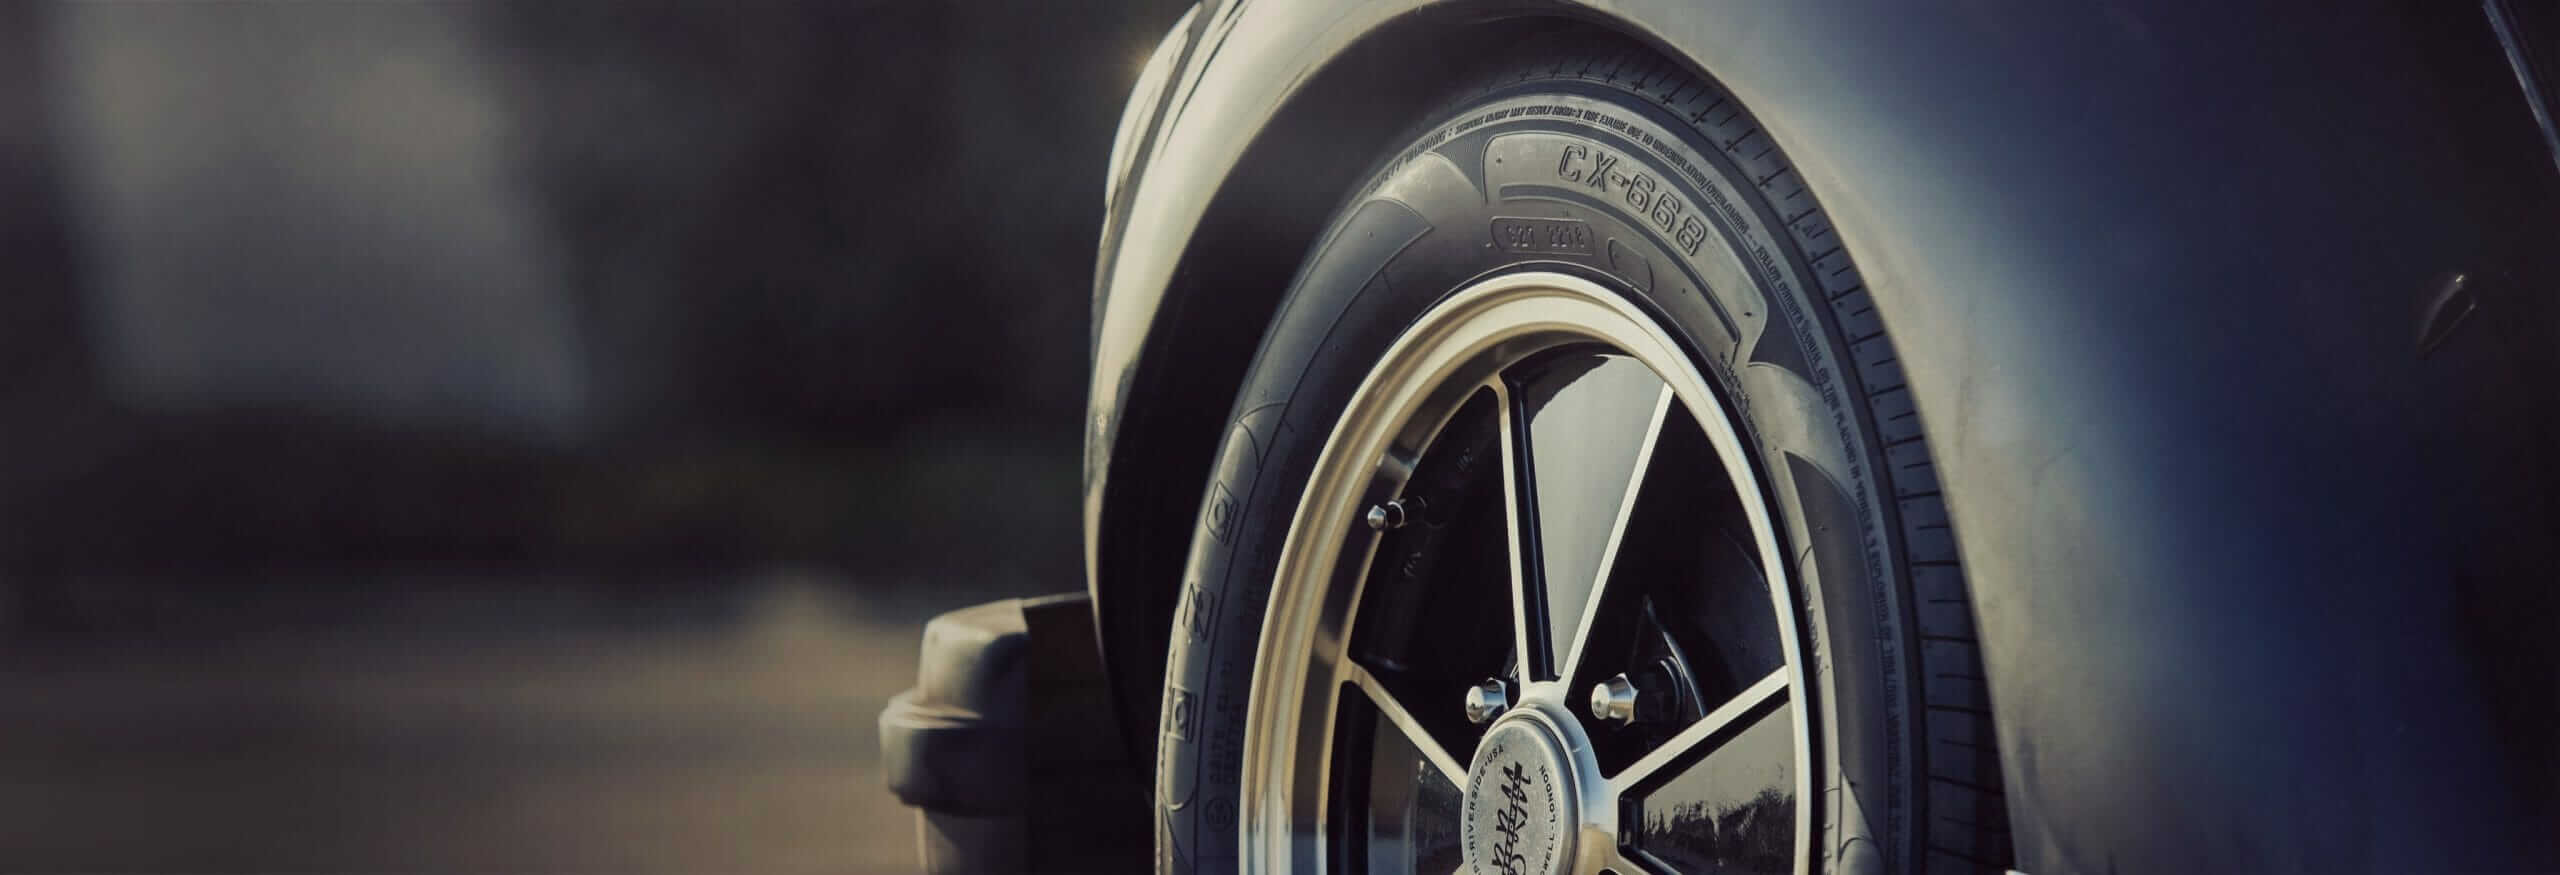 Home Page Tire Slider - CX668_3